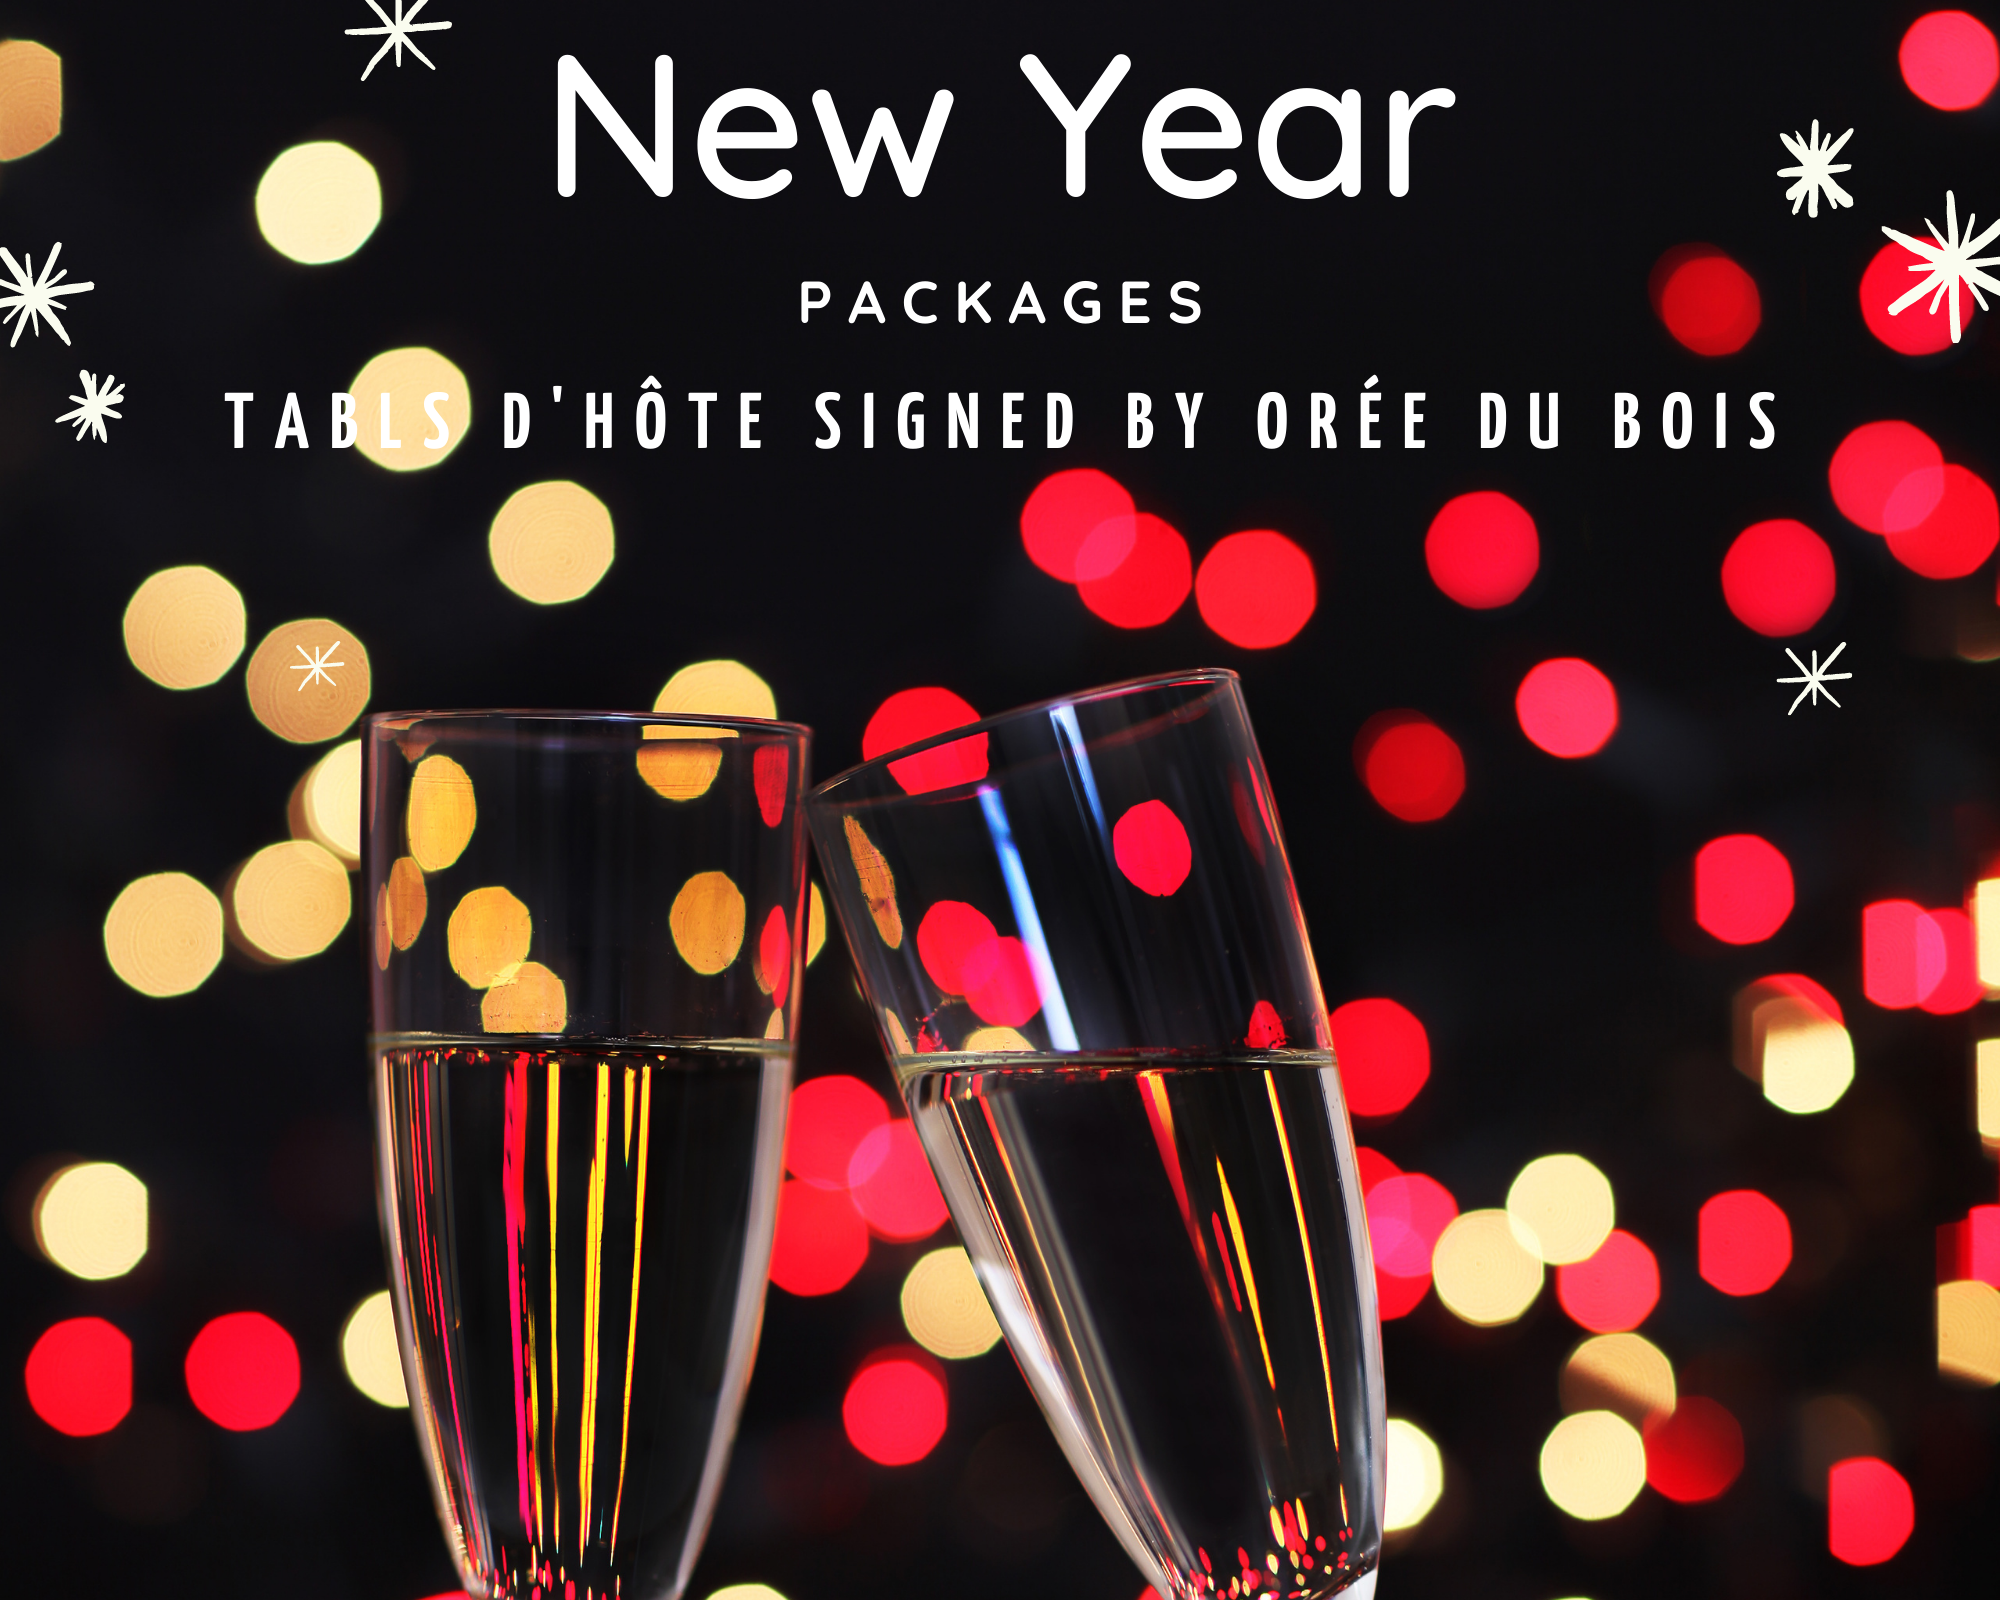 Auberge Tom B&B - New Year Packages